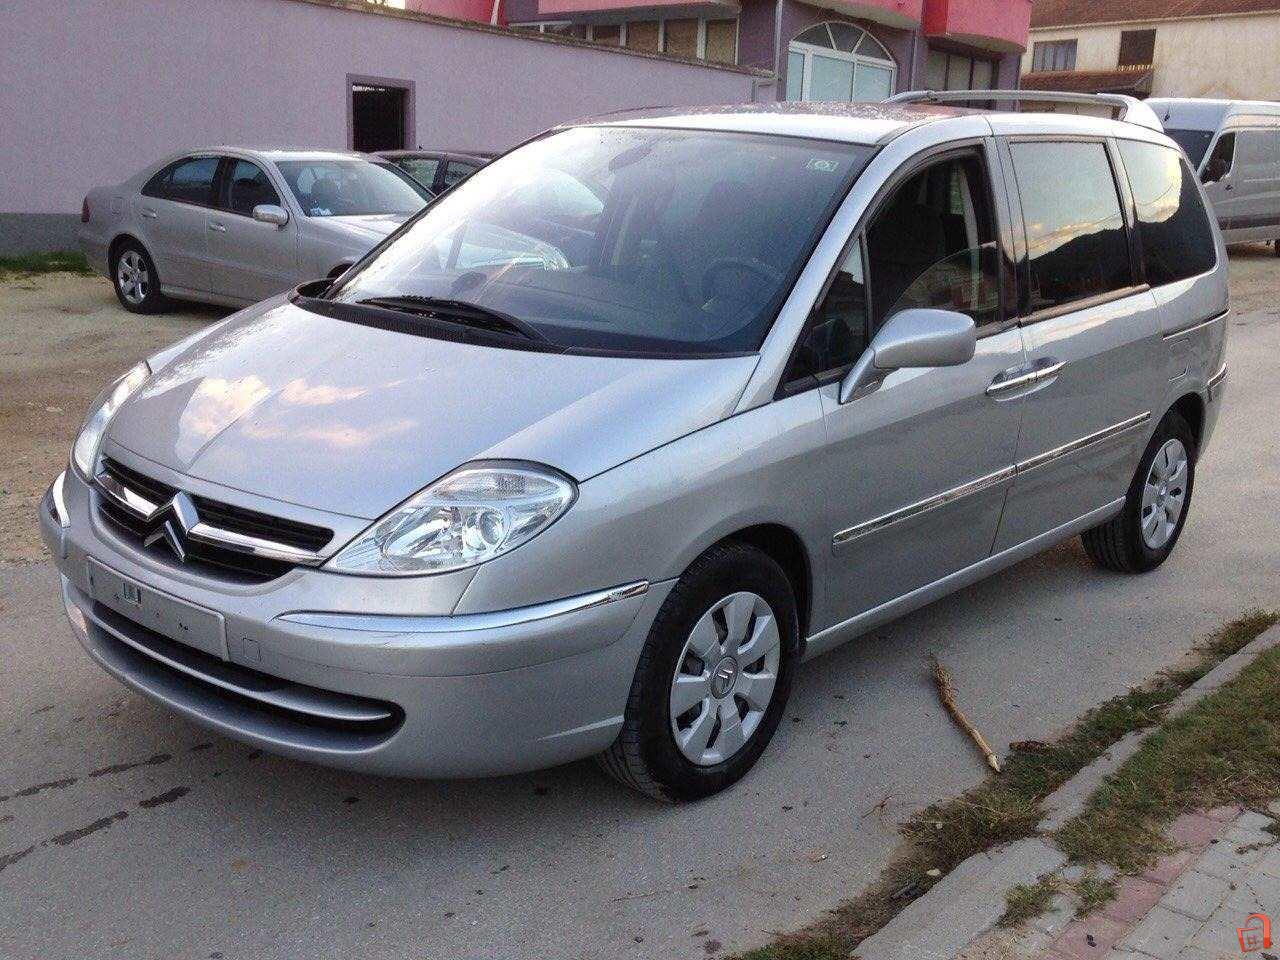 ad citroen c8 2 0 hdi 08 cena povolna for sale prilep dolneni vehicles. Black Bedroom Furniture Sets. Home Design Ideas